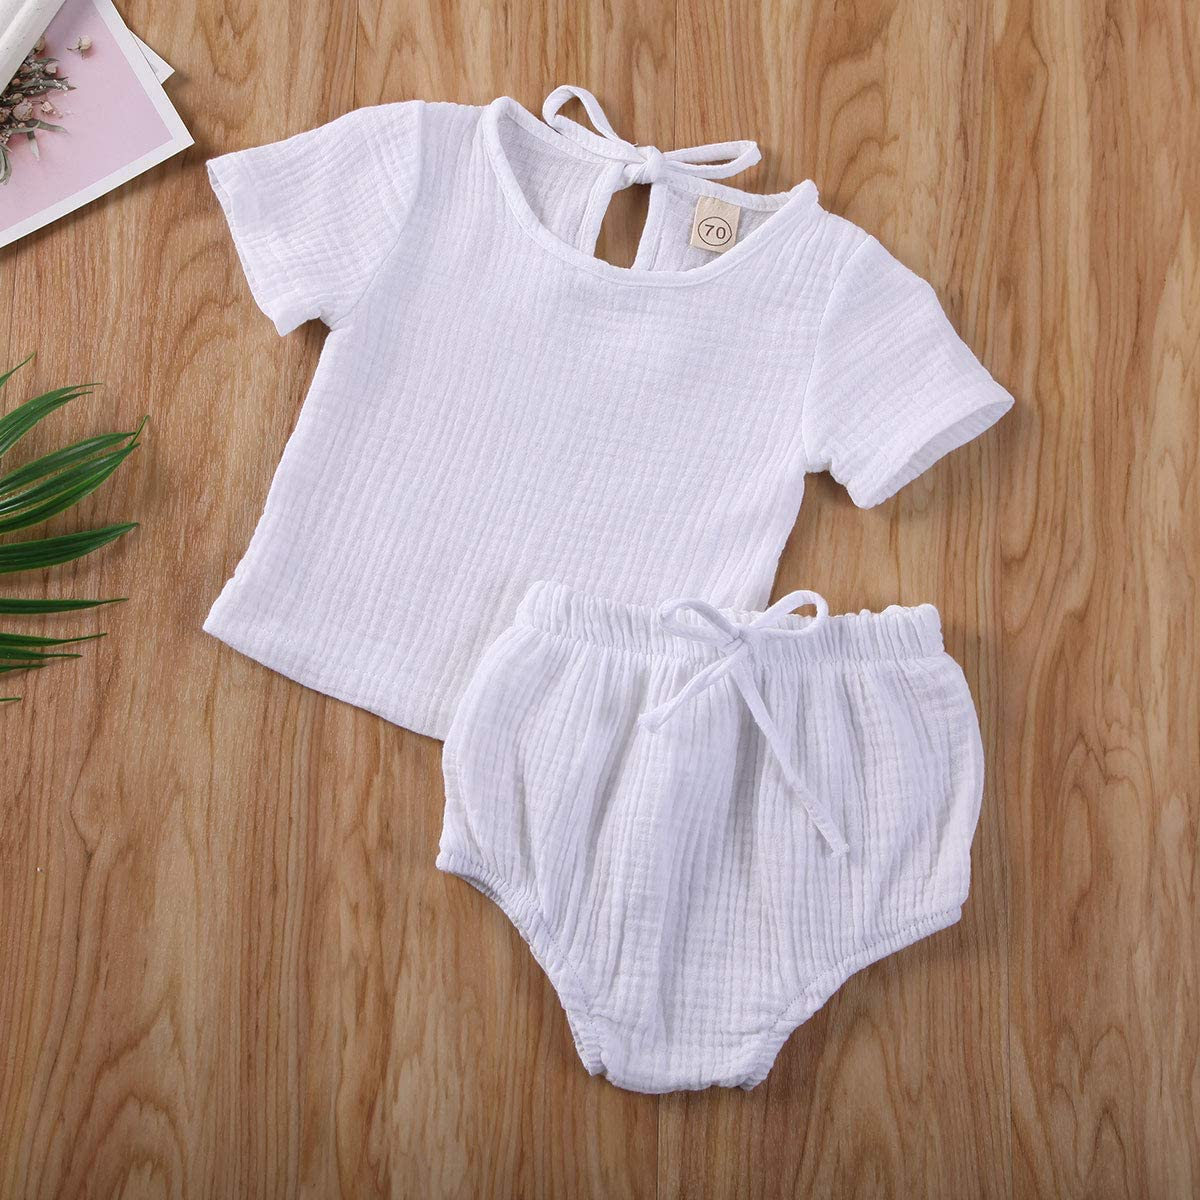 Baby Bloomers Infant Shorts Soft Breathable Cotton Linen Short Pants for Unisex Boy Girl 90-Blue